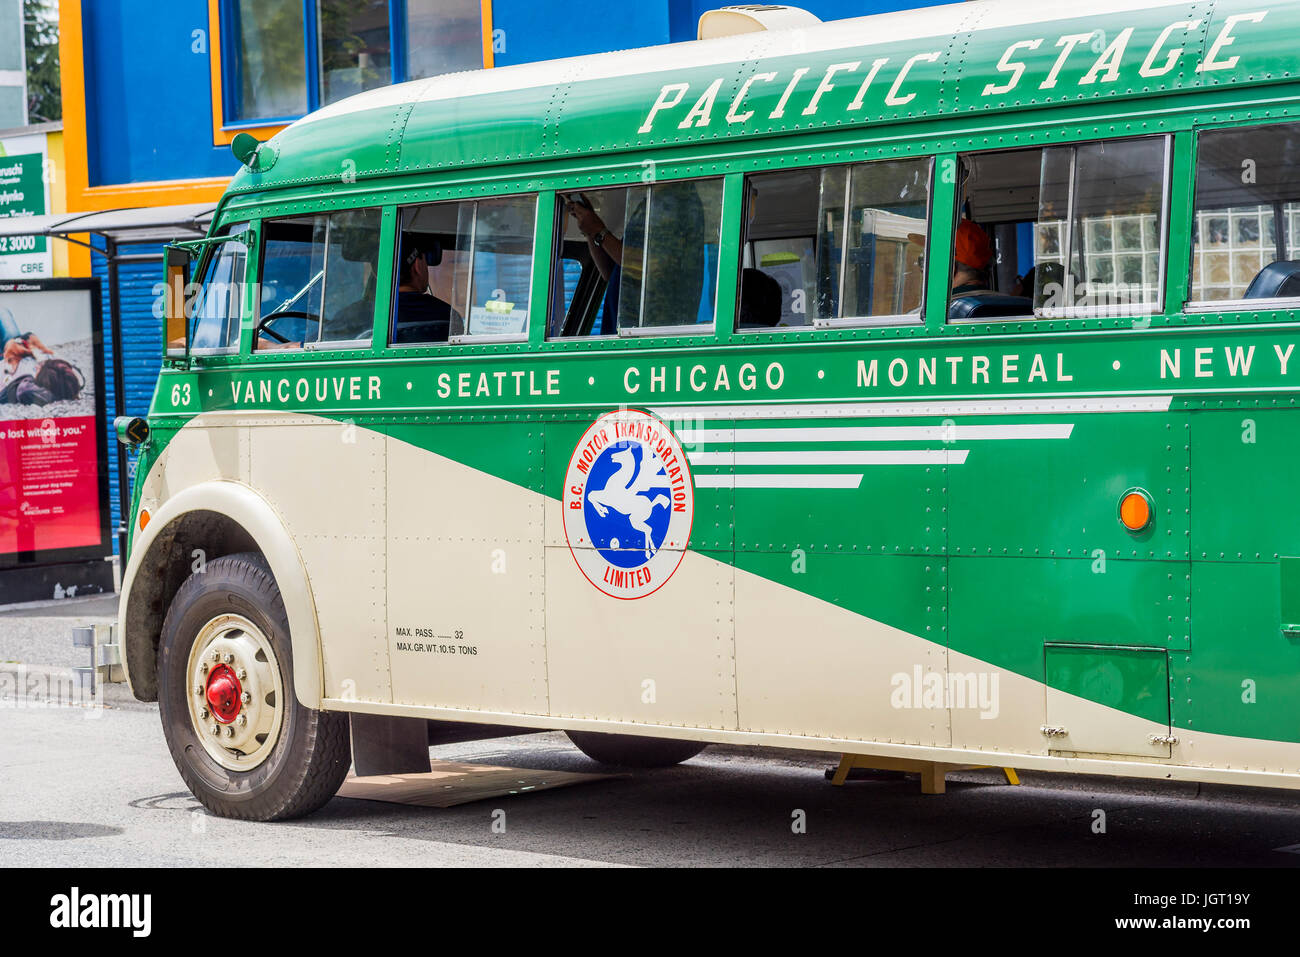 Vintage Pacific Stage Lines Hayes Tear Drop Bus, Car Free Day, Commercial Drive, Vancouver, British Columbia, Canada. - Stock Image